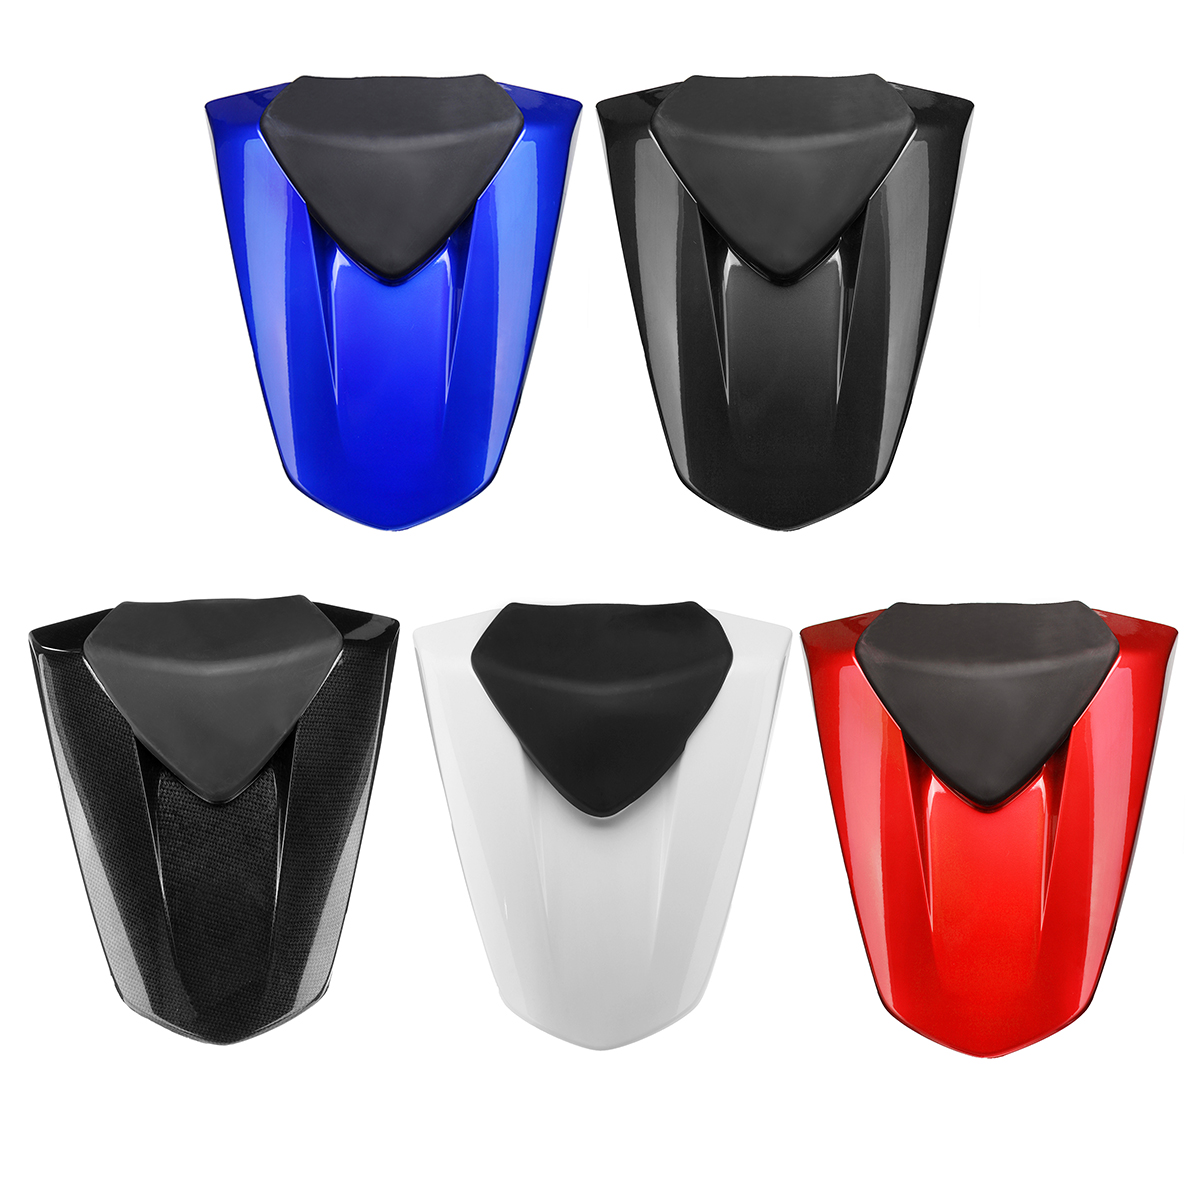 Motorcycle ABS Rear Pillion Seat Cowl Fairing Cover For Honda CBR500R CBR 500R 2013-2015